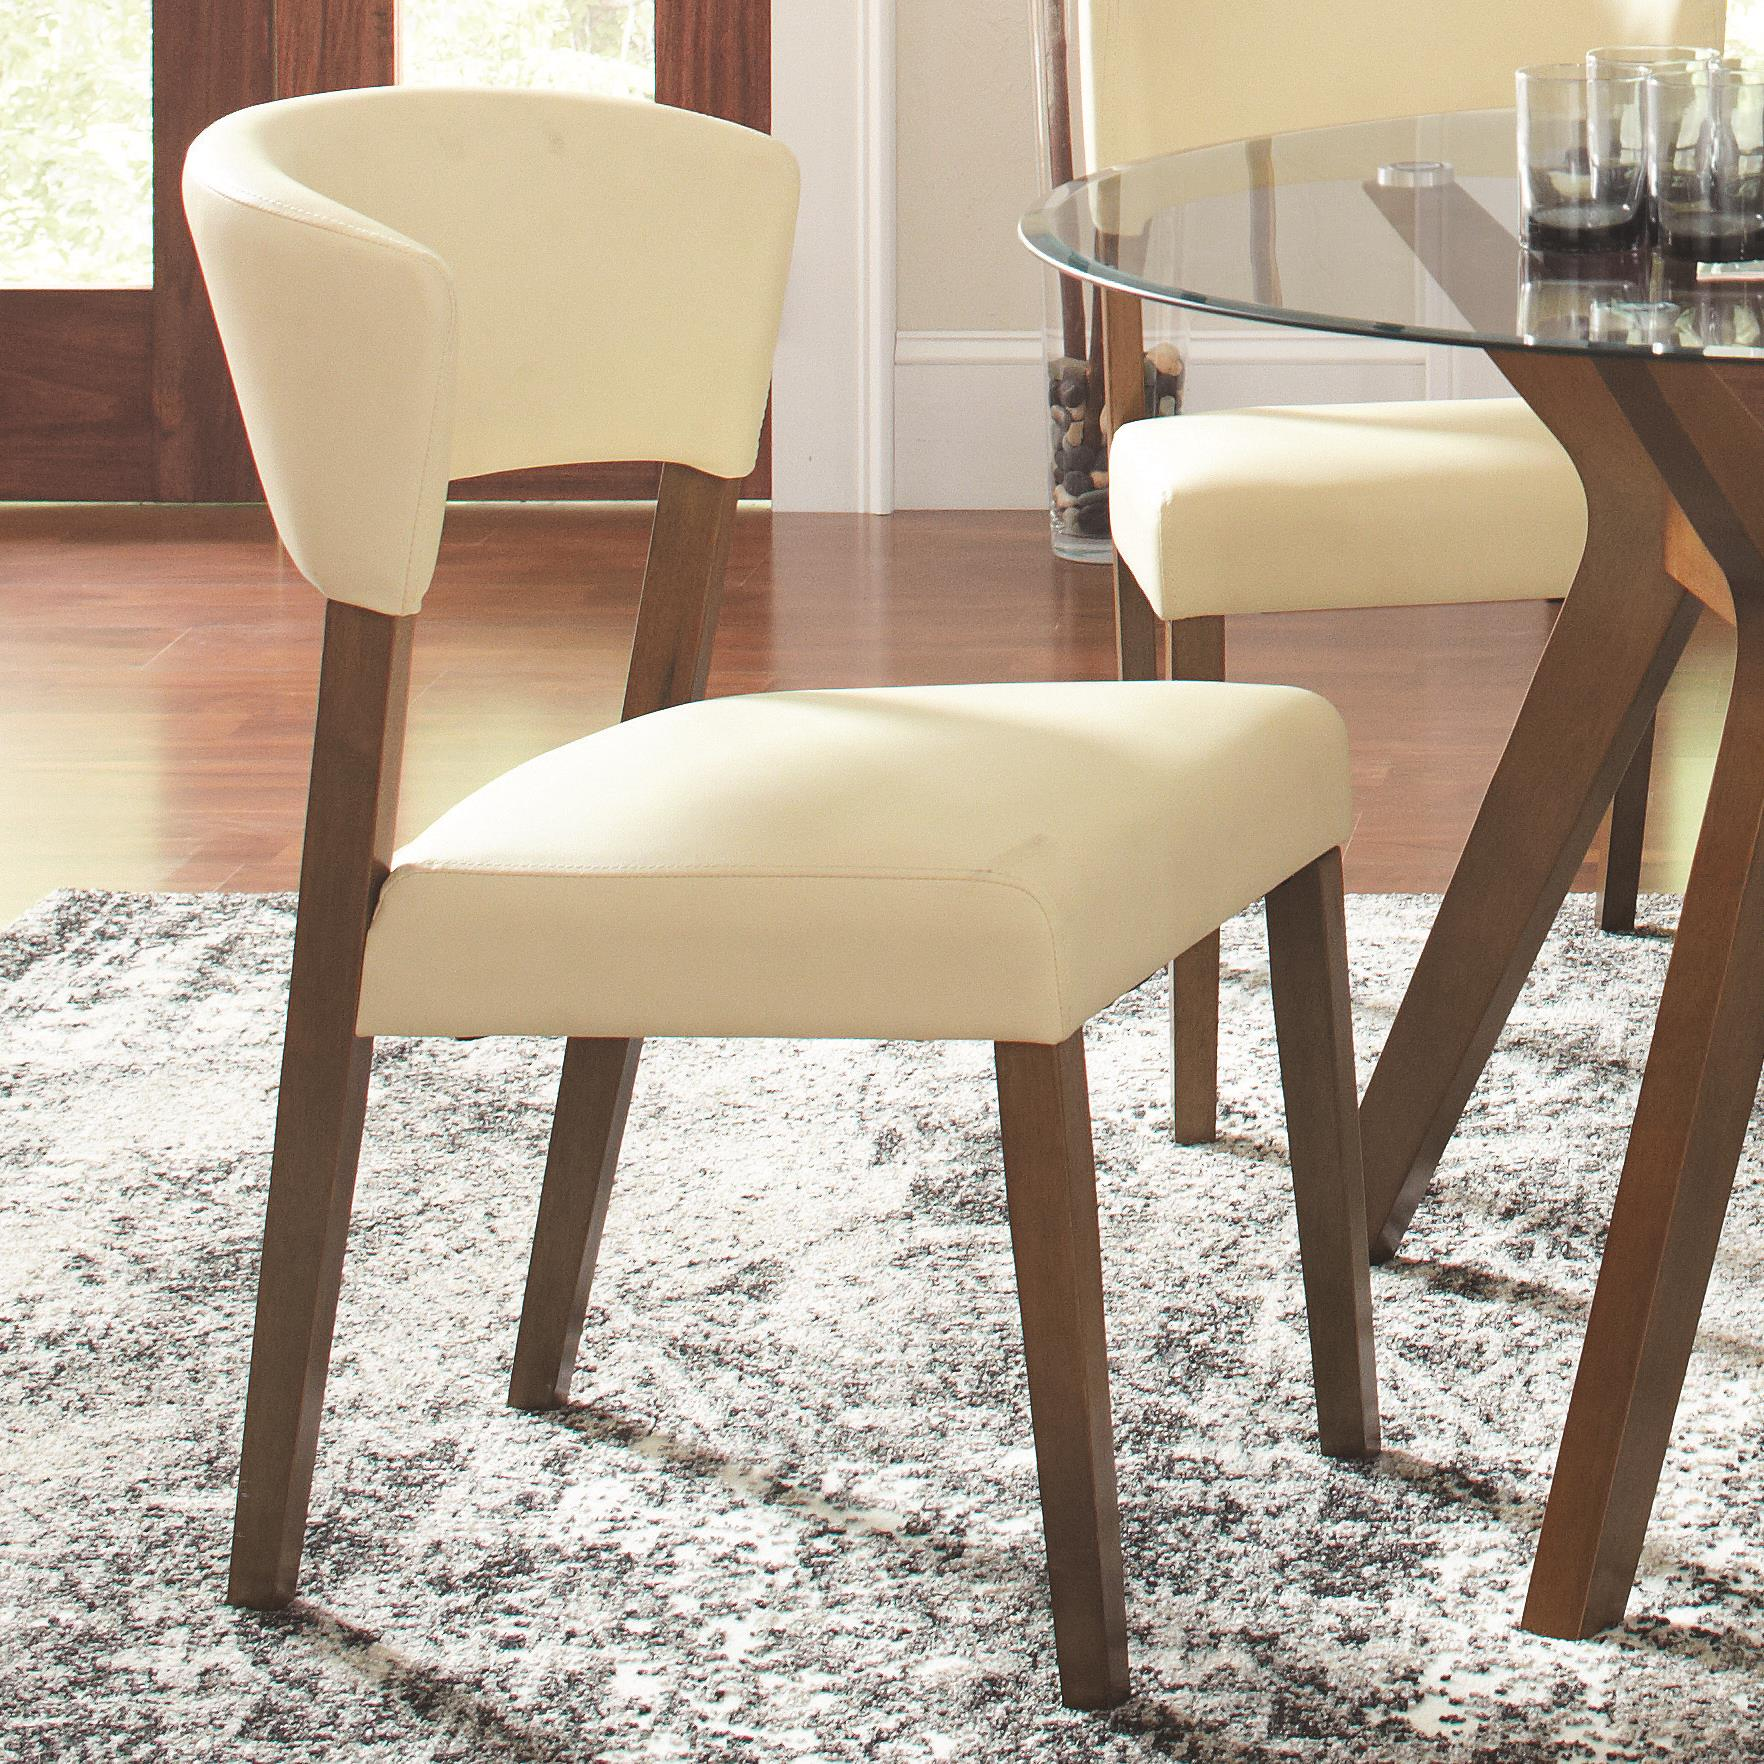 Cream Chairs Coaster Paxton 12218 122182 Cream Upholstered Dining Chair